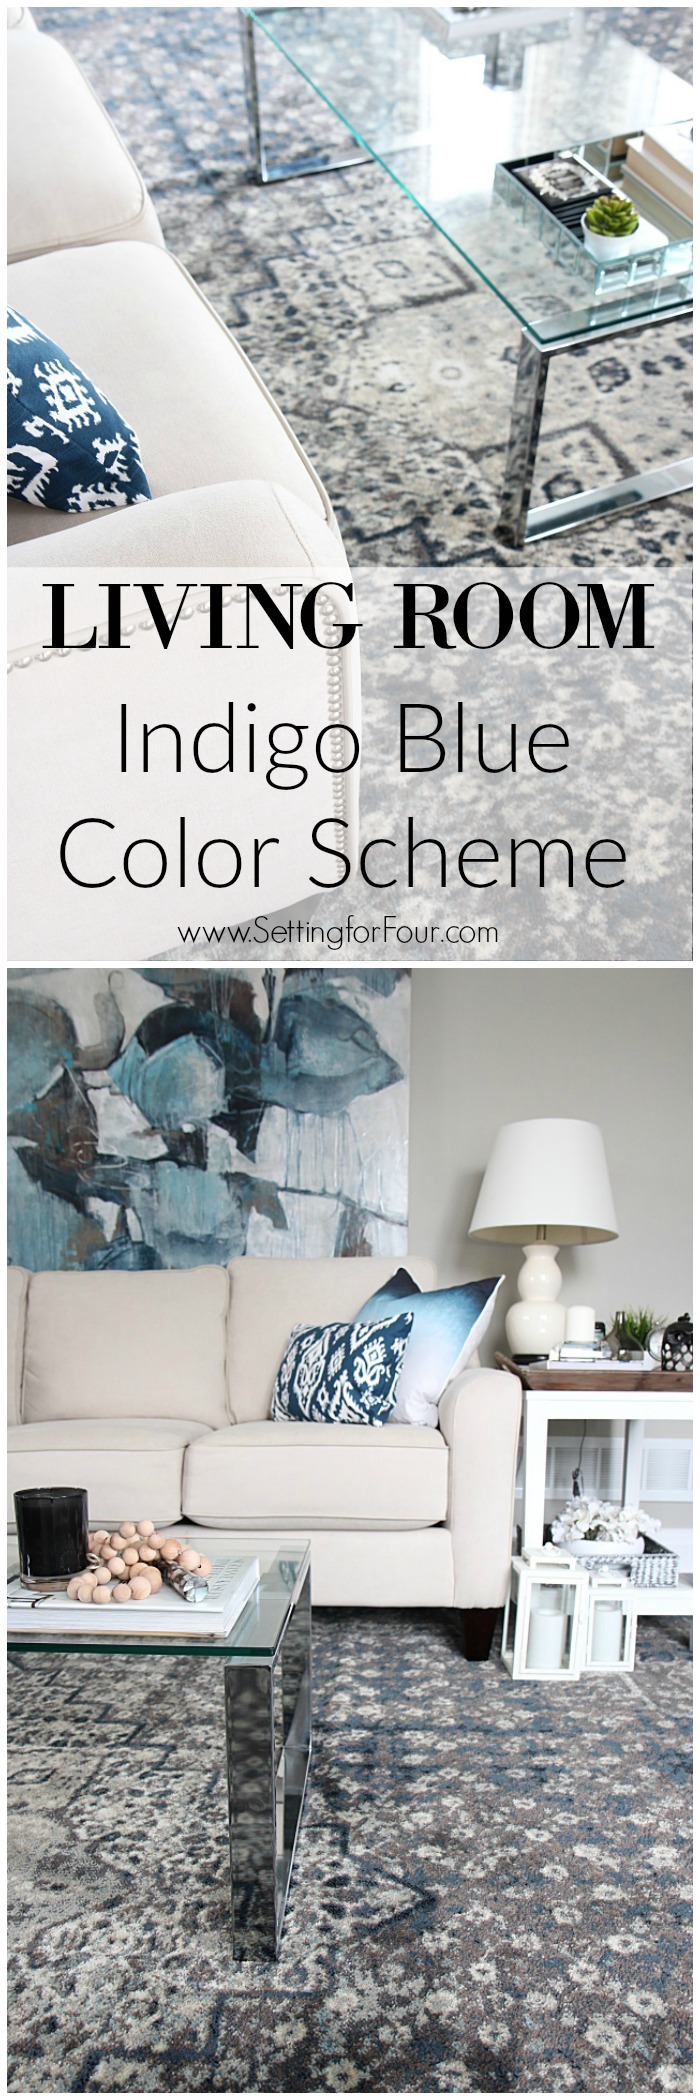 Living Room Indigo Blue Color Scheme. You HAVE to see this amazing gorgeous indigo blue area rug in a vintage washed pattern. Resource list for the entire room included!